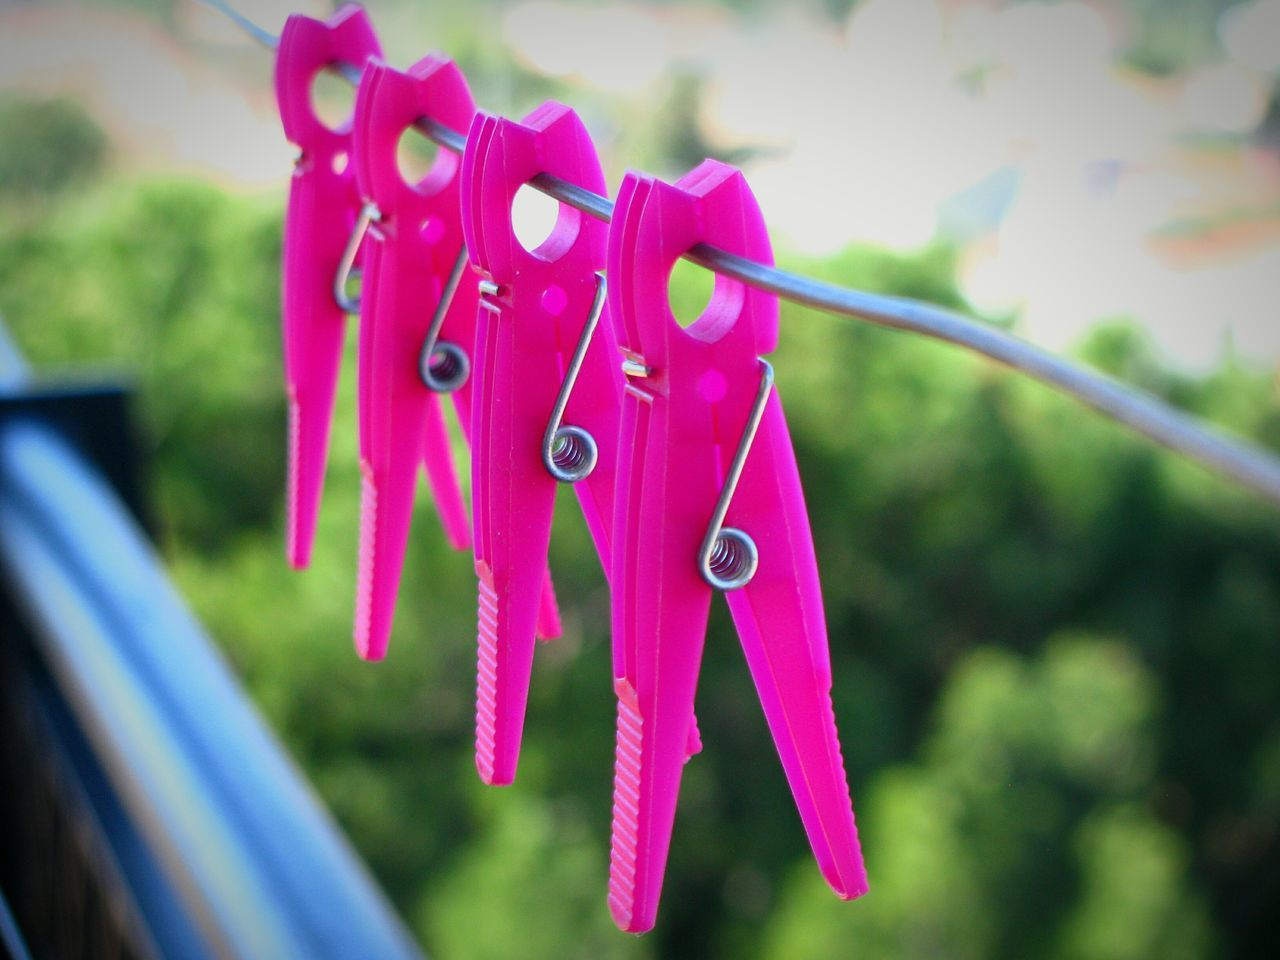 Millennial Pink Pink Pink Color Focus On Foreground Hanging Close-up Nature Growth Laundry No People Clothes Pegs Clothes Pins Clothes Peg Clothes Pin Symmetry Series Of Four Series Of Things Abundance Four Alignment Row Rows Of Things